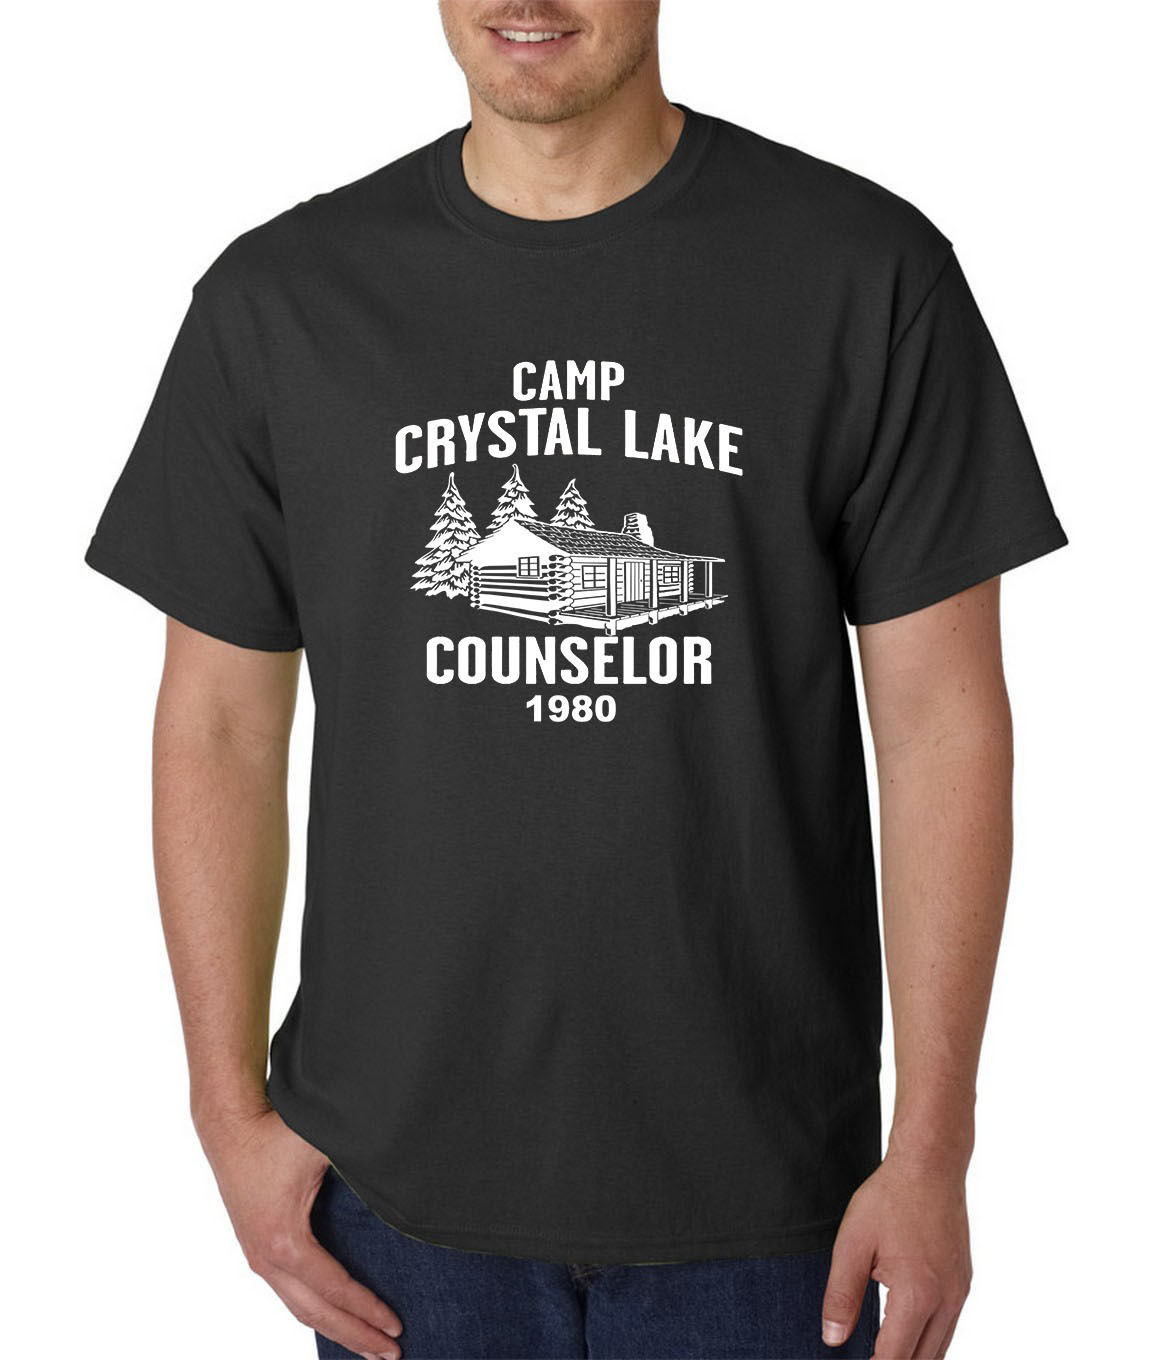 47c7d7898276 Camp Crystal Lake Counselor T-Shirt -Friday 13th Jason Voorhees Freddy  Halloween Normal Short Sleeve Cotton T Shirts